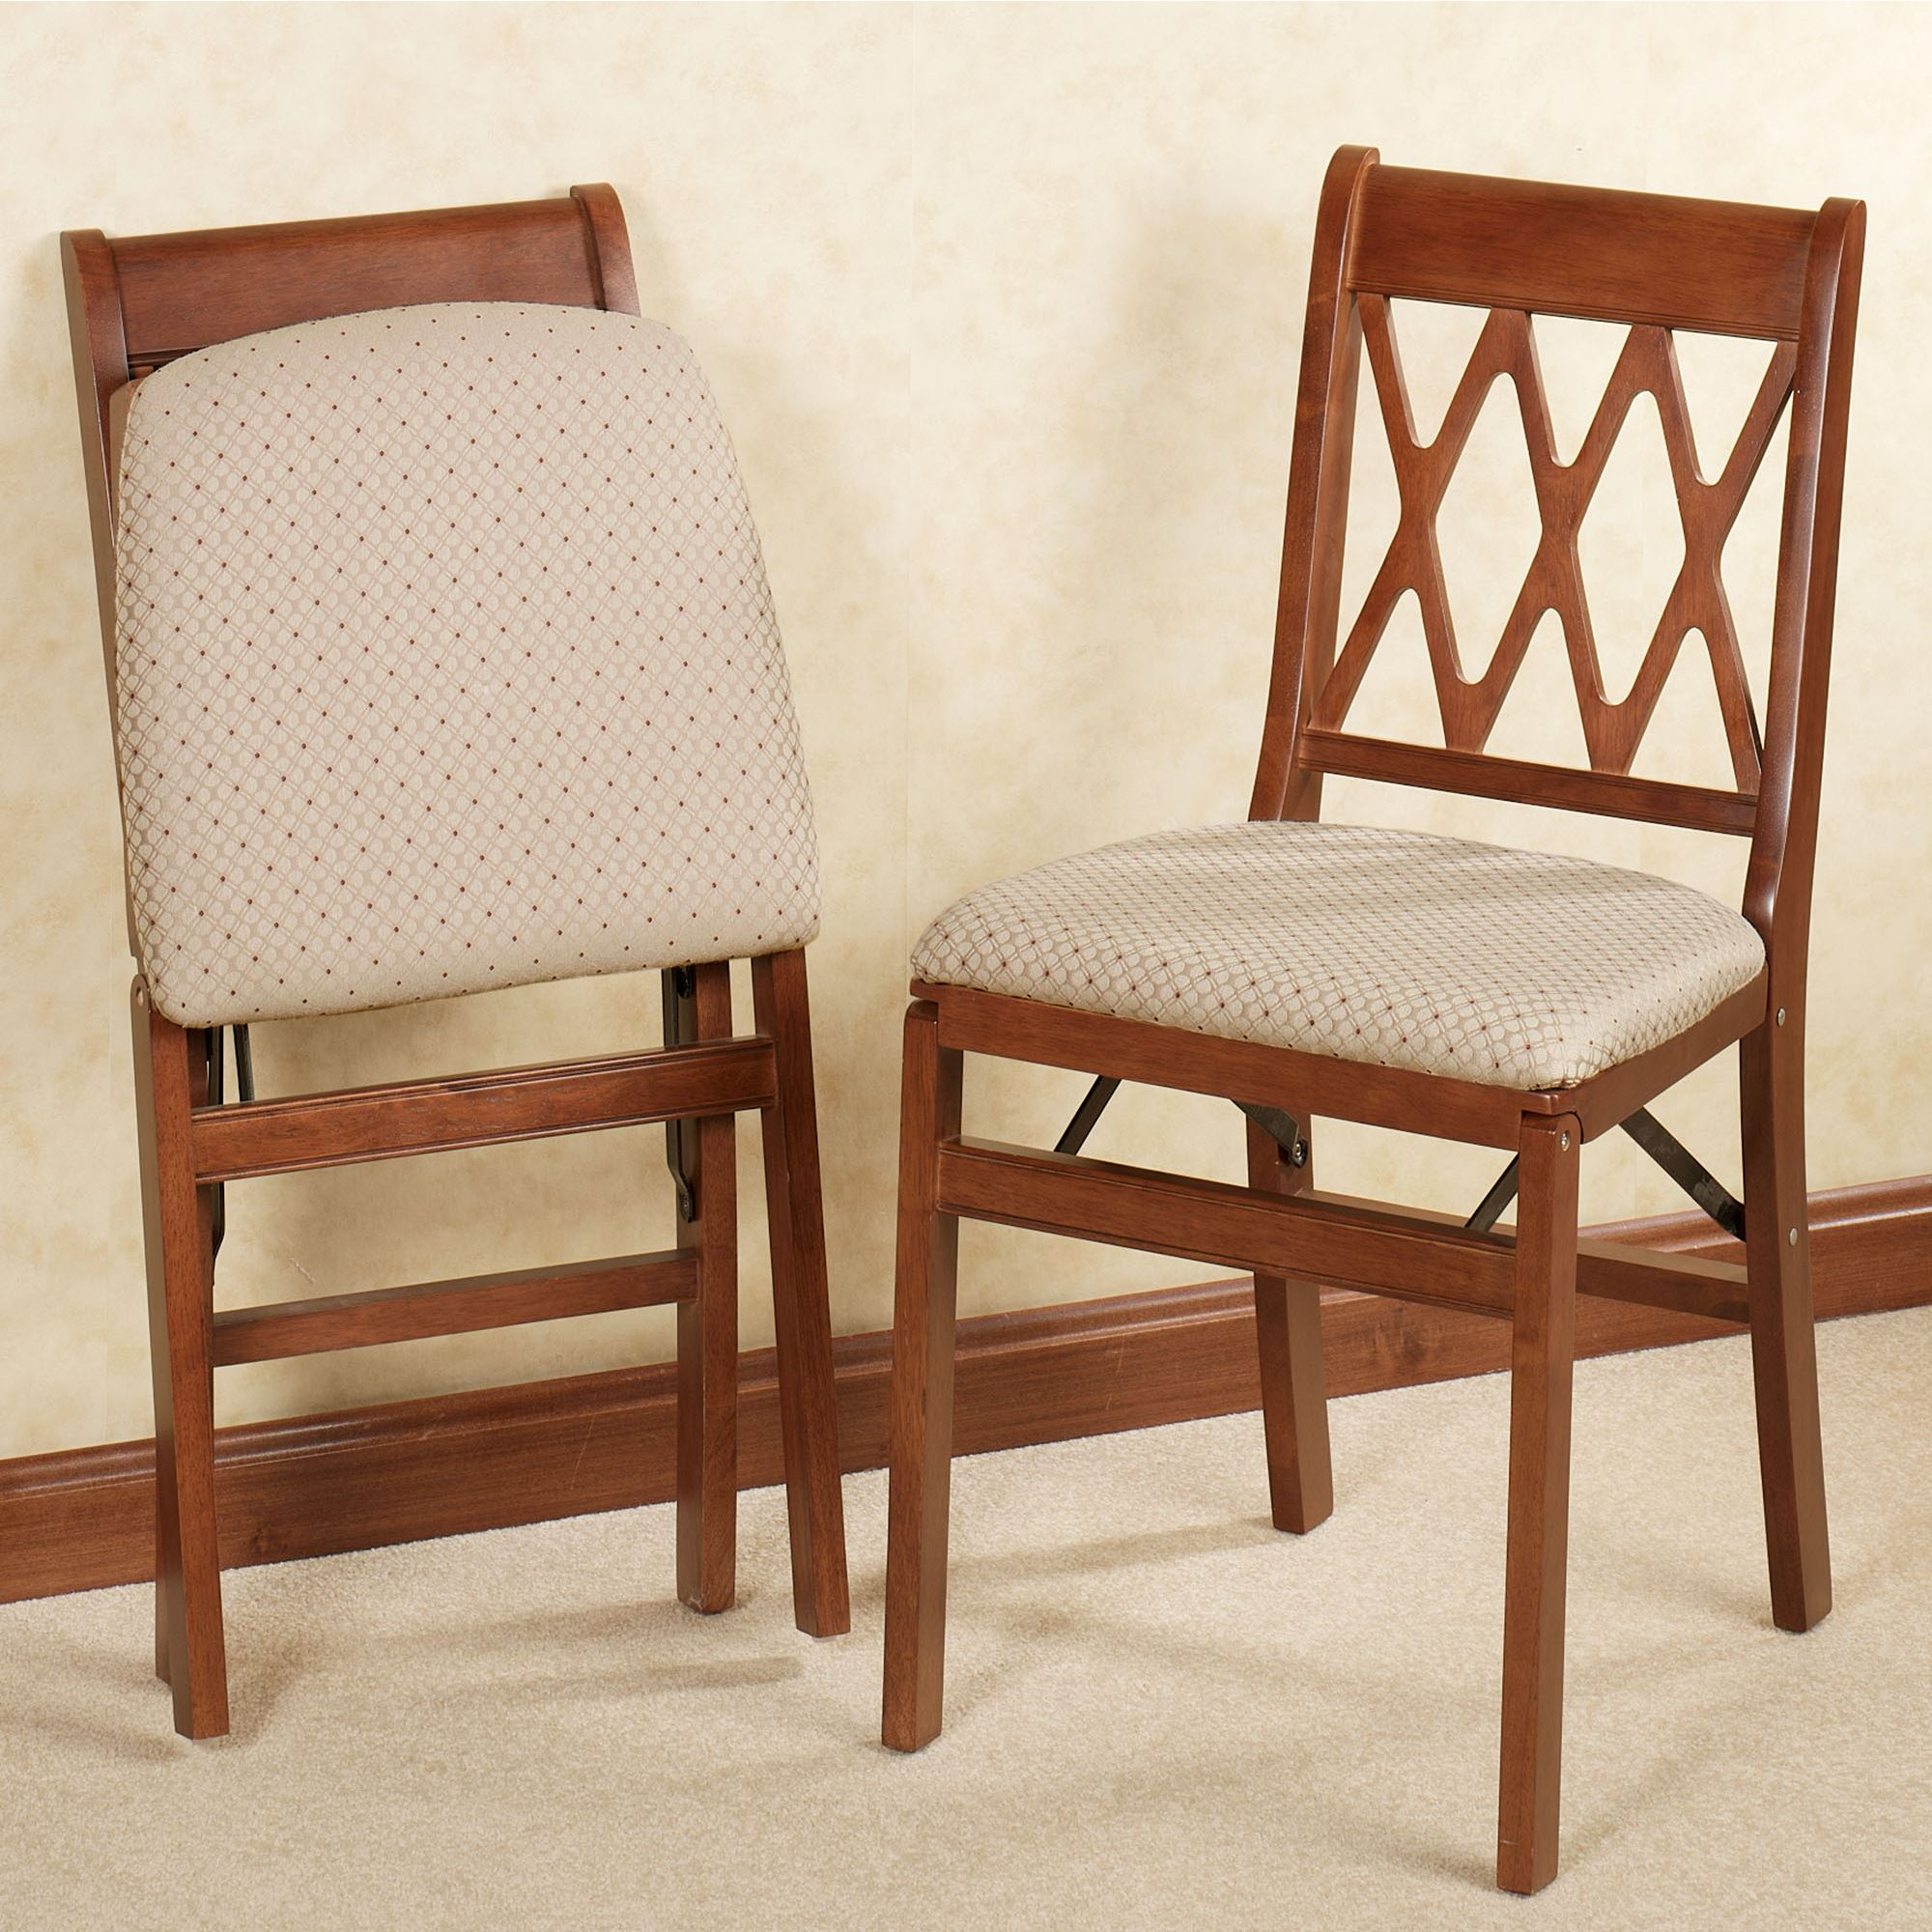 You Might Also Consider Lyre Folding Chair